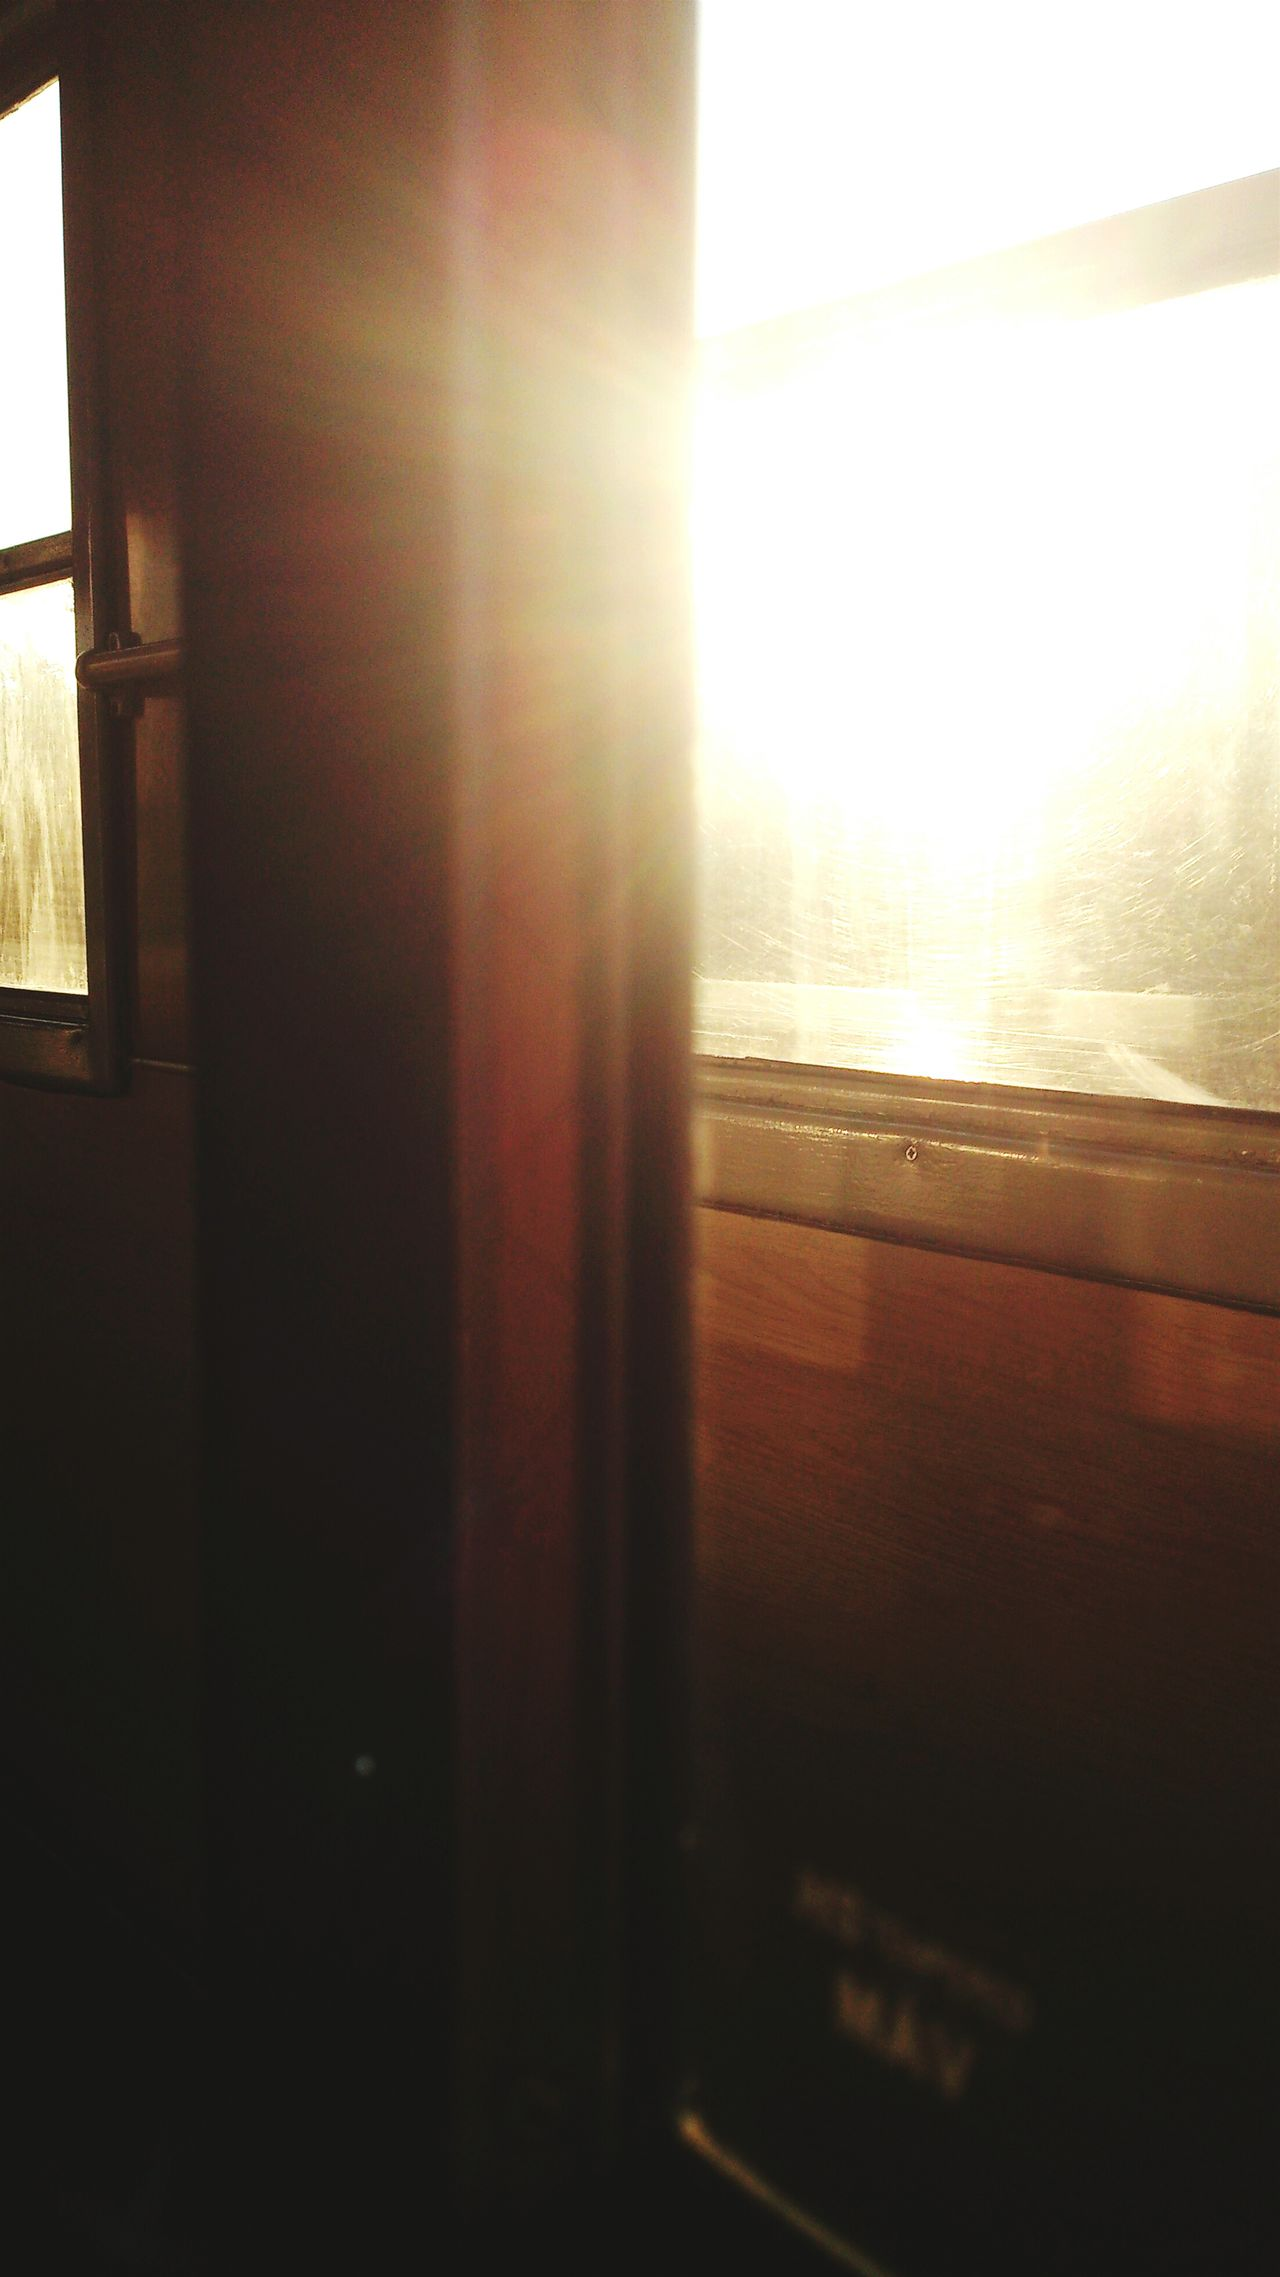 Sunlight through the Window of a Train . Sun Sunset Sunset_collection Sunshine Sunbeam Sunny Sunrise_sunsets_aroundworld Sunsets Sunshine ☀ Windows Window View Window Light Train Interior Hungarianphotographer Hungaryculture Hungary Photos Hungarylife Hungary Love Hungary I <3 You Hungarian_photographers Hungary Culture Hungary